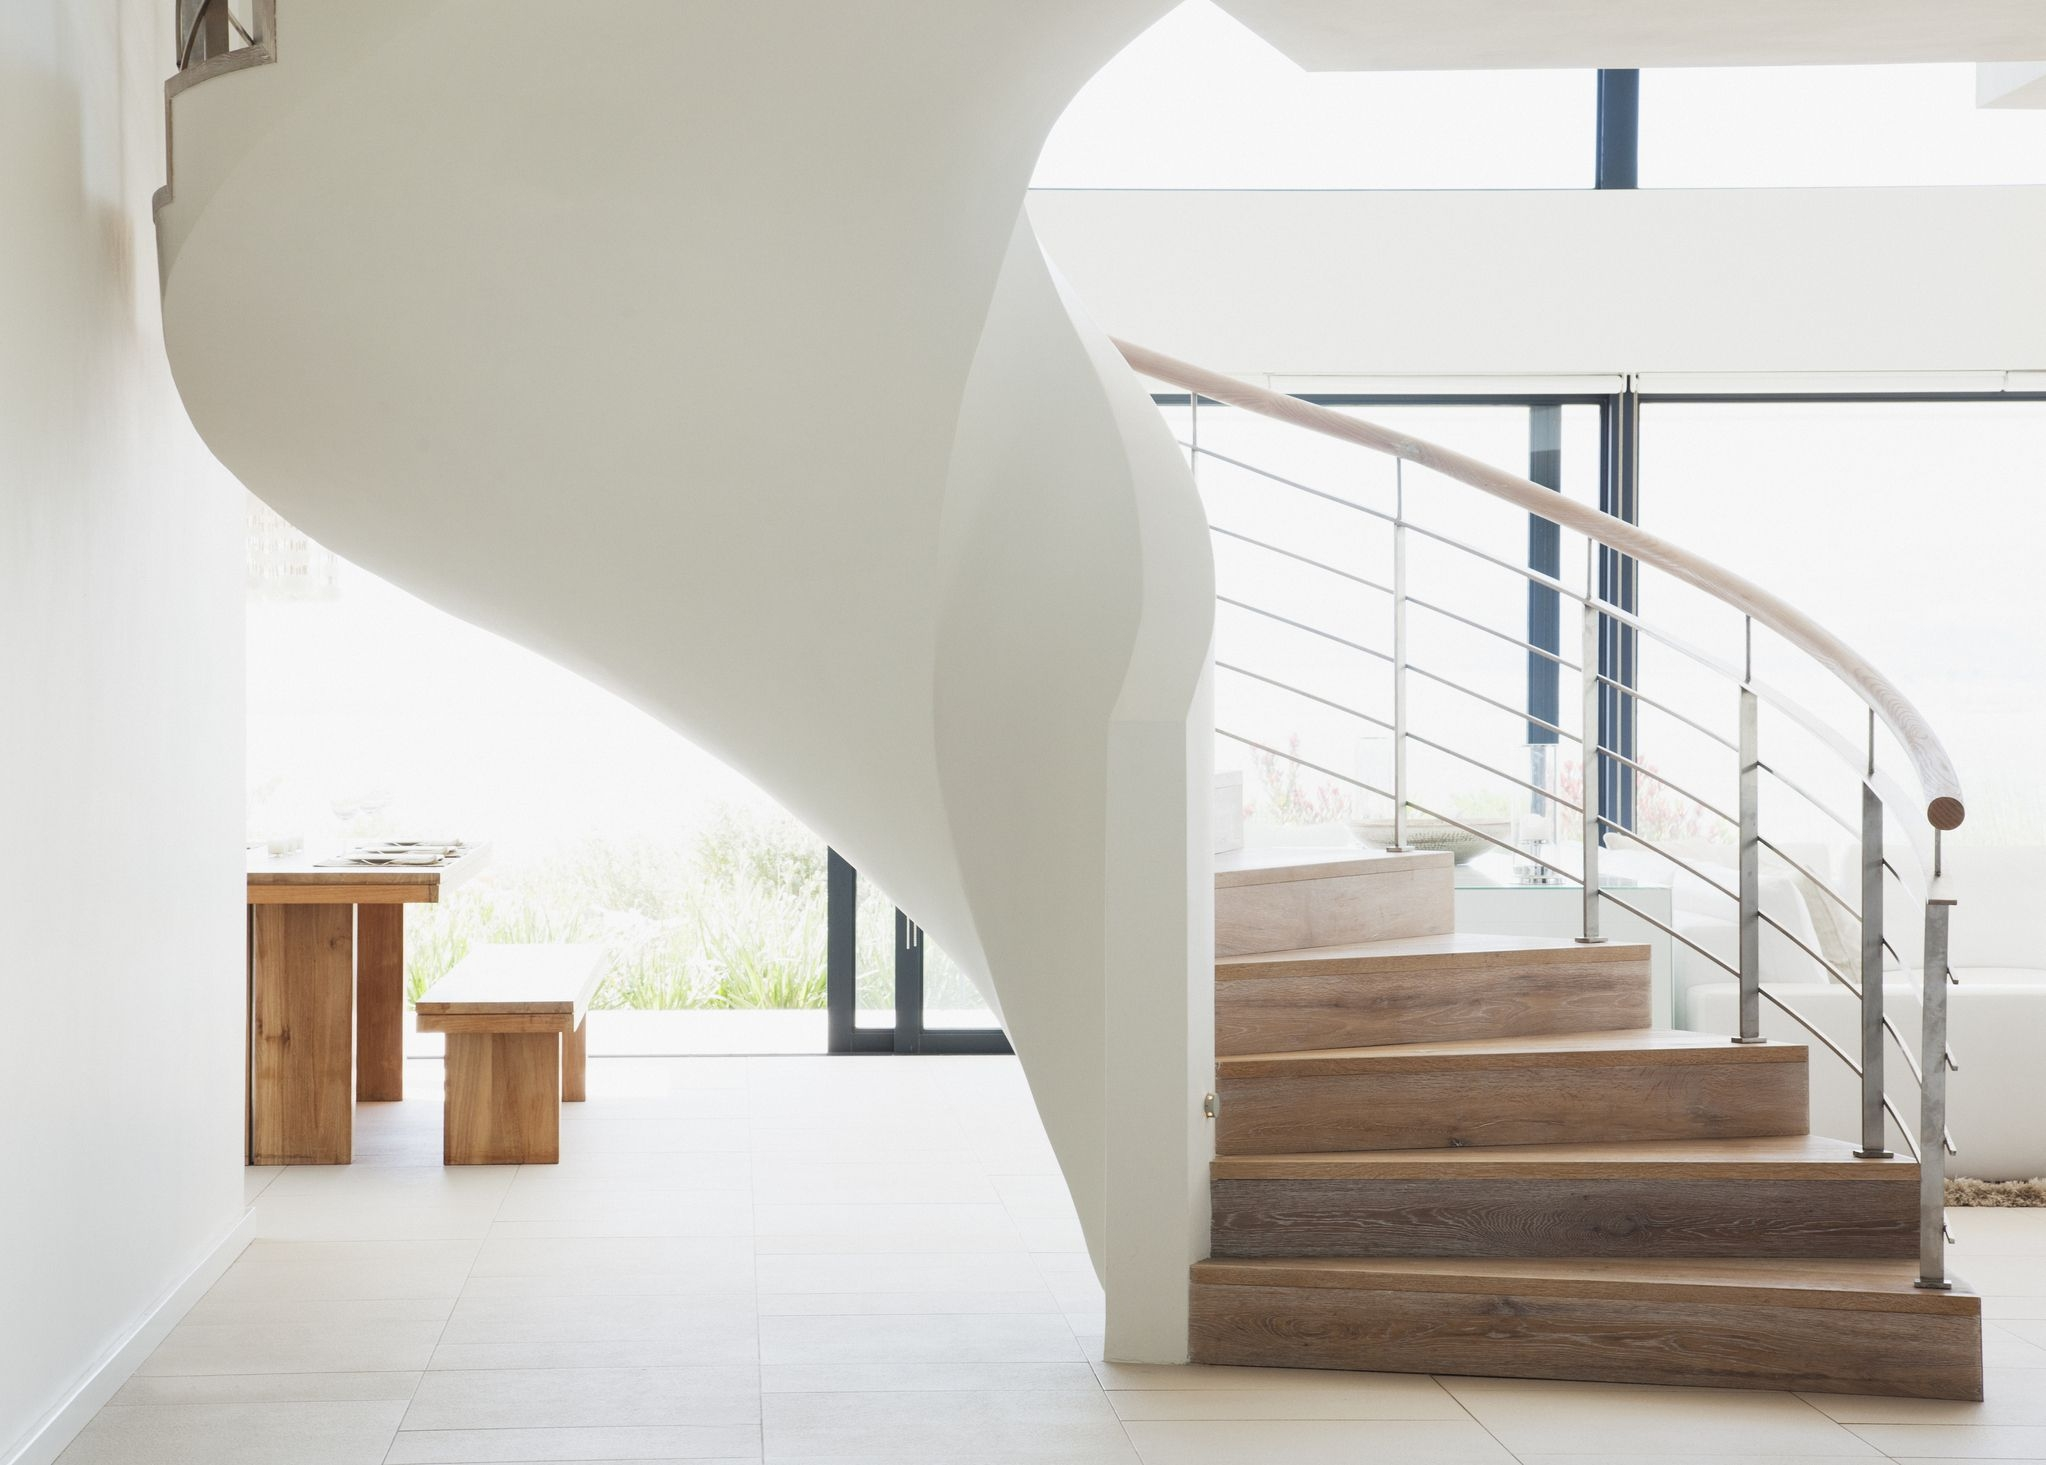 Interior Staircase Design Ideas Repairing Replacing Or Repositioning | Replacement Handrail For Spiral Staircase | Staircase Kits | Floating Staircase | Modern Staircase Design | Staircase Ideas | Steel